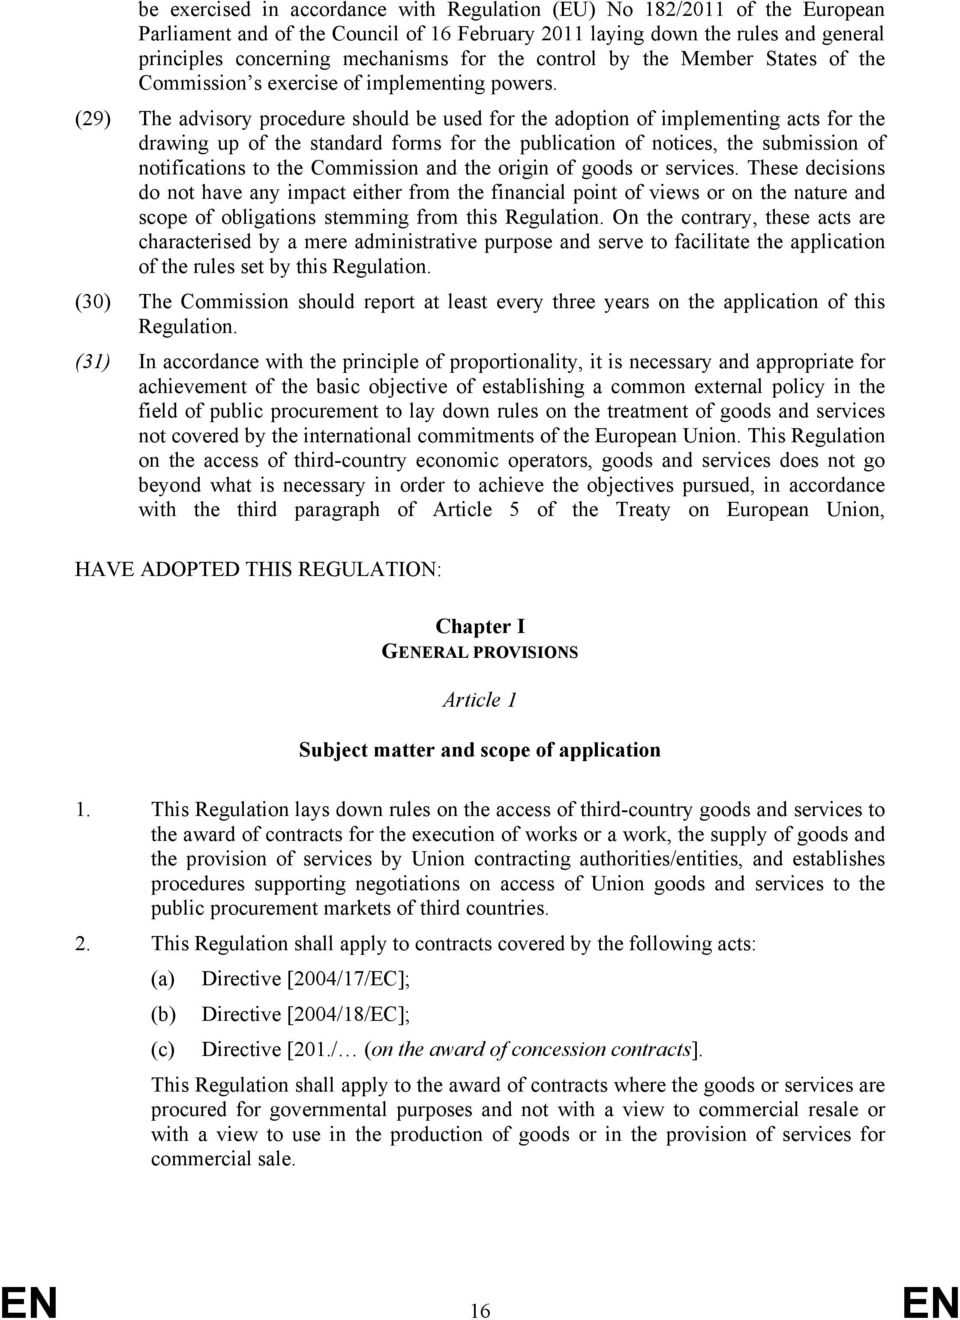 (29) The advisory procedure should be used for the adoption of implementing acts for the drawing up of the standard forms for the publication of notices, the submission of notifications to the